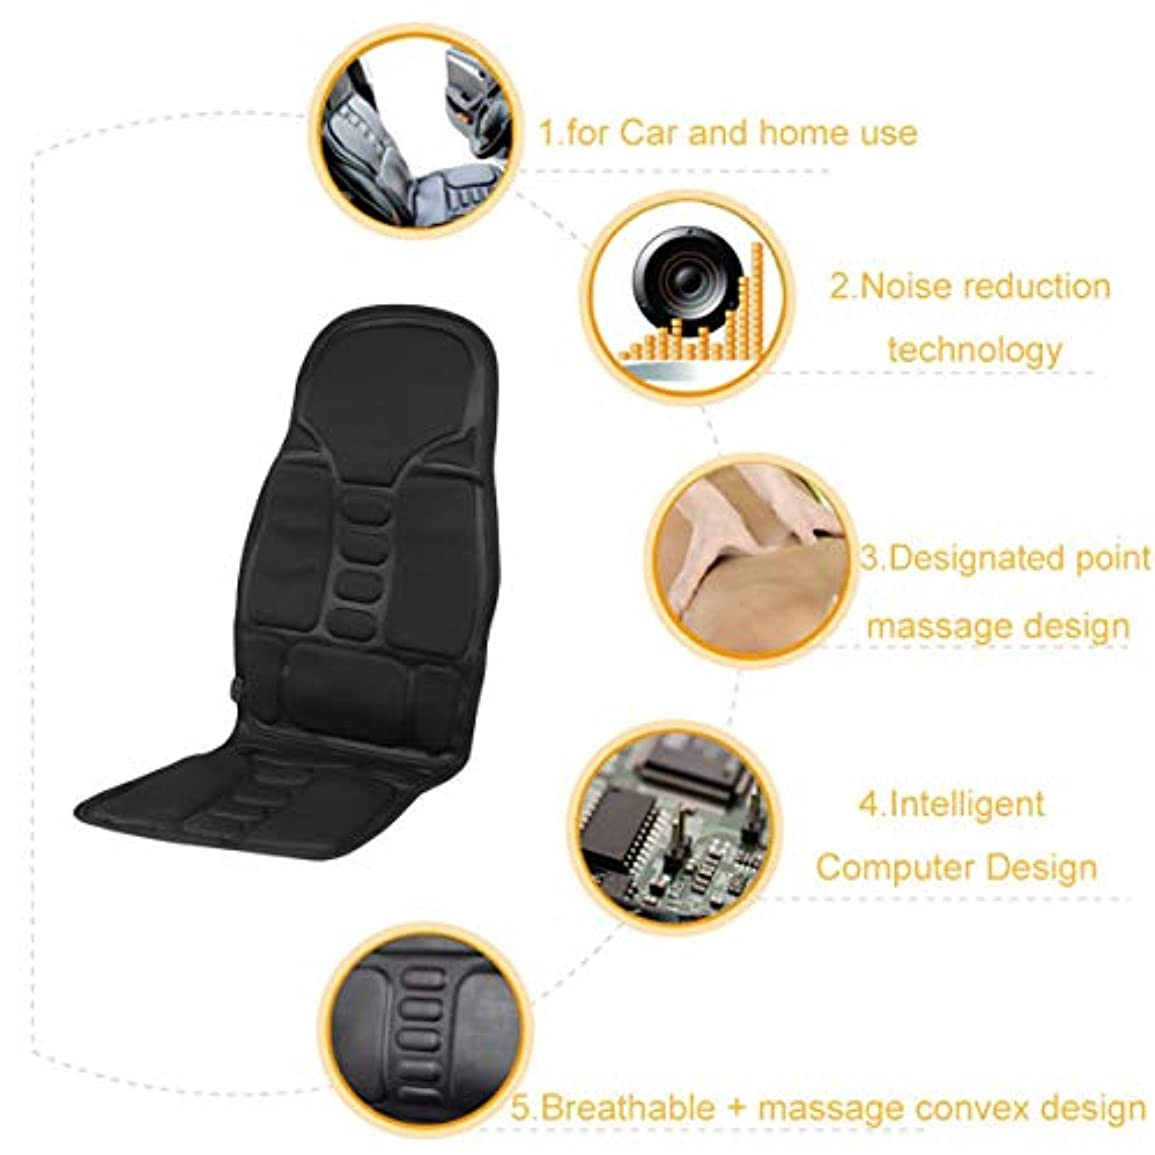 トーストきちんとした取り出すProfessional Car Household Office Full Body Massage Cushion Lumbar Heat Vibration Neck Back Massage Cushion Seat